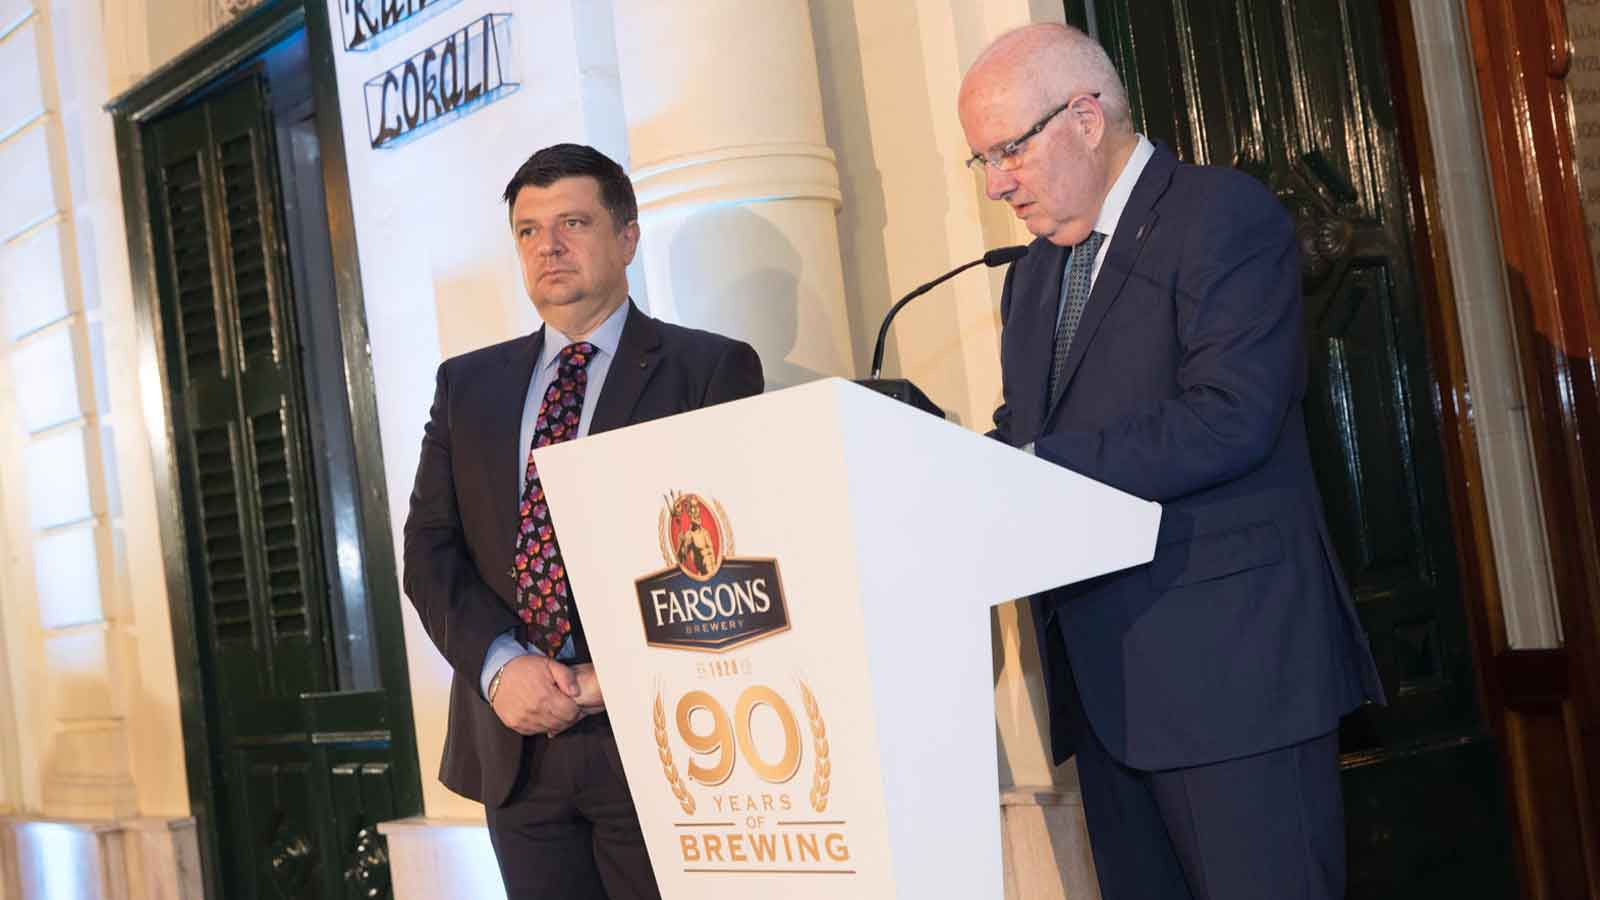 Farsons marks the delivery of its first beer to Qormi, 90 years ago